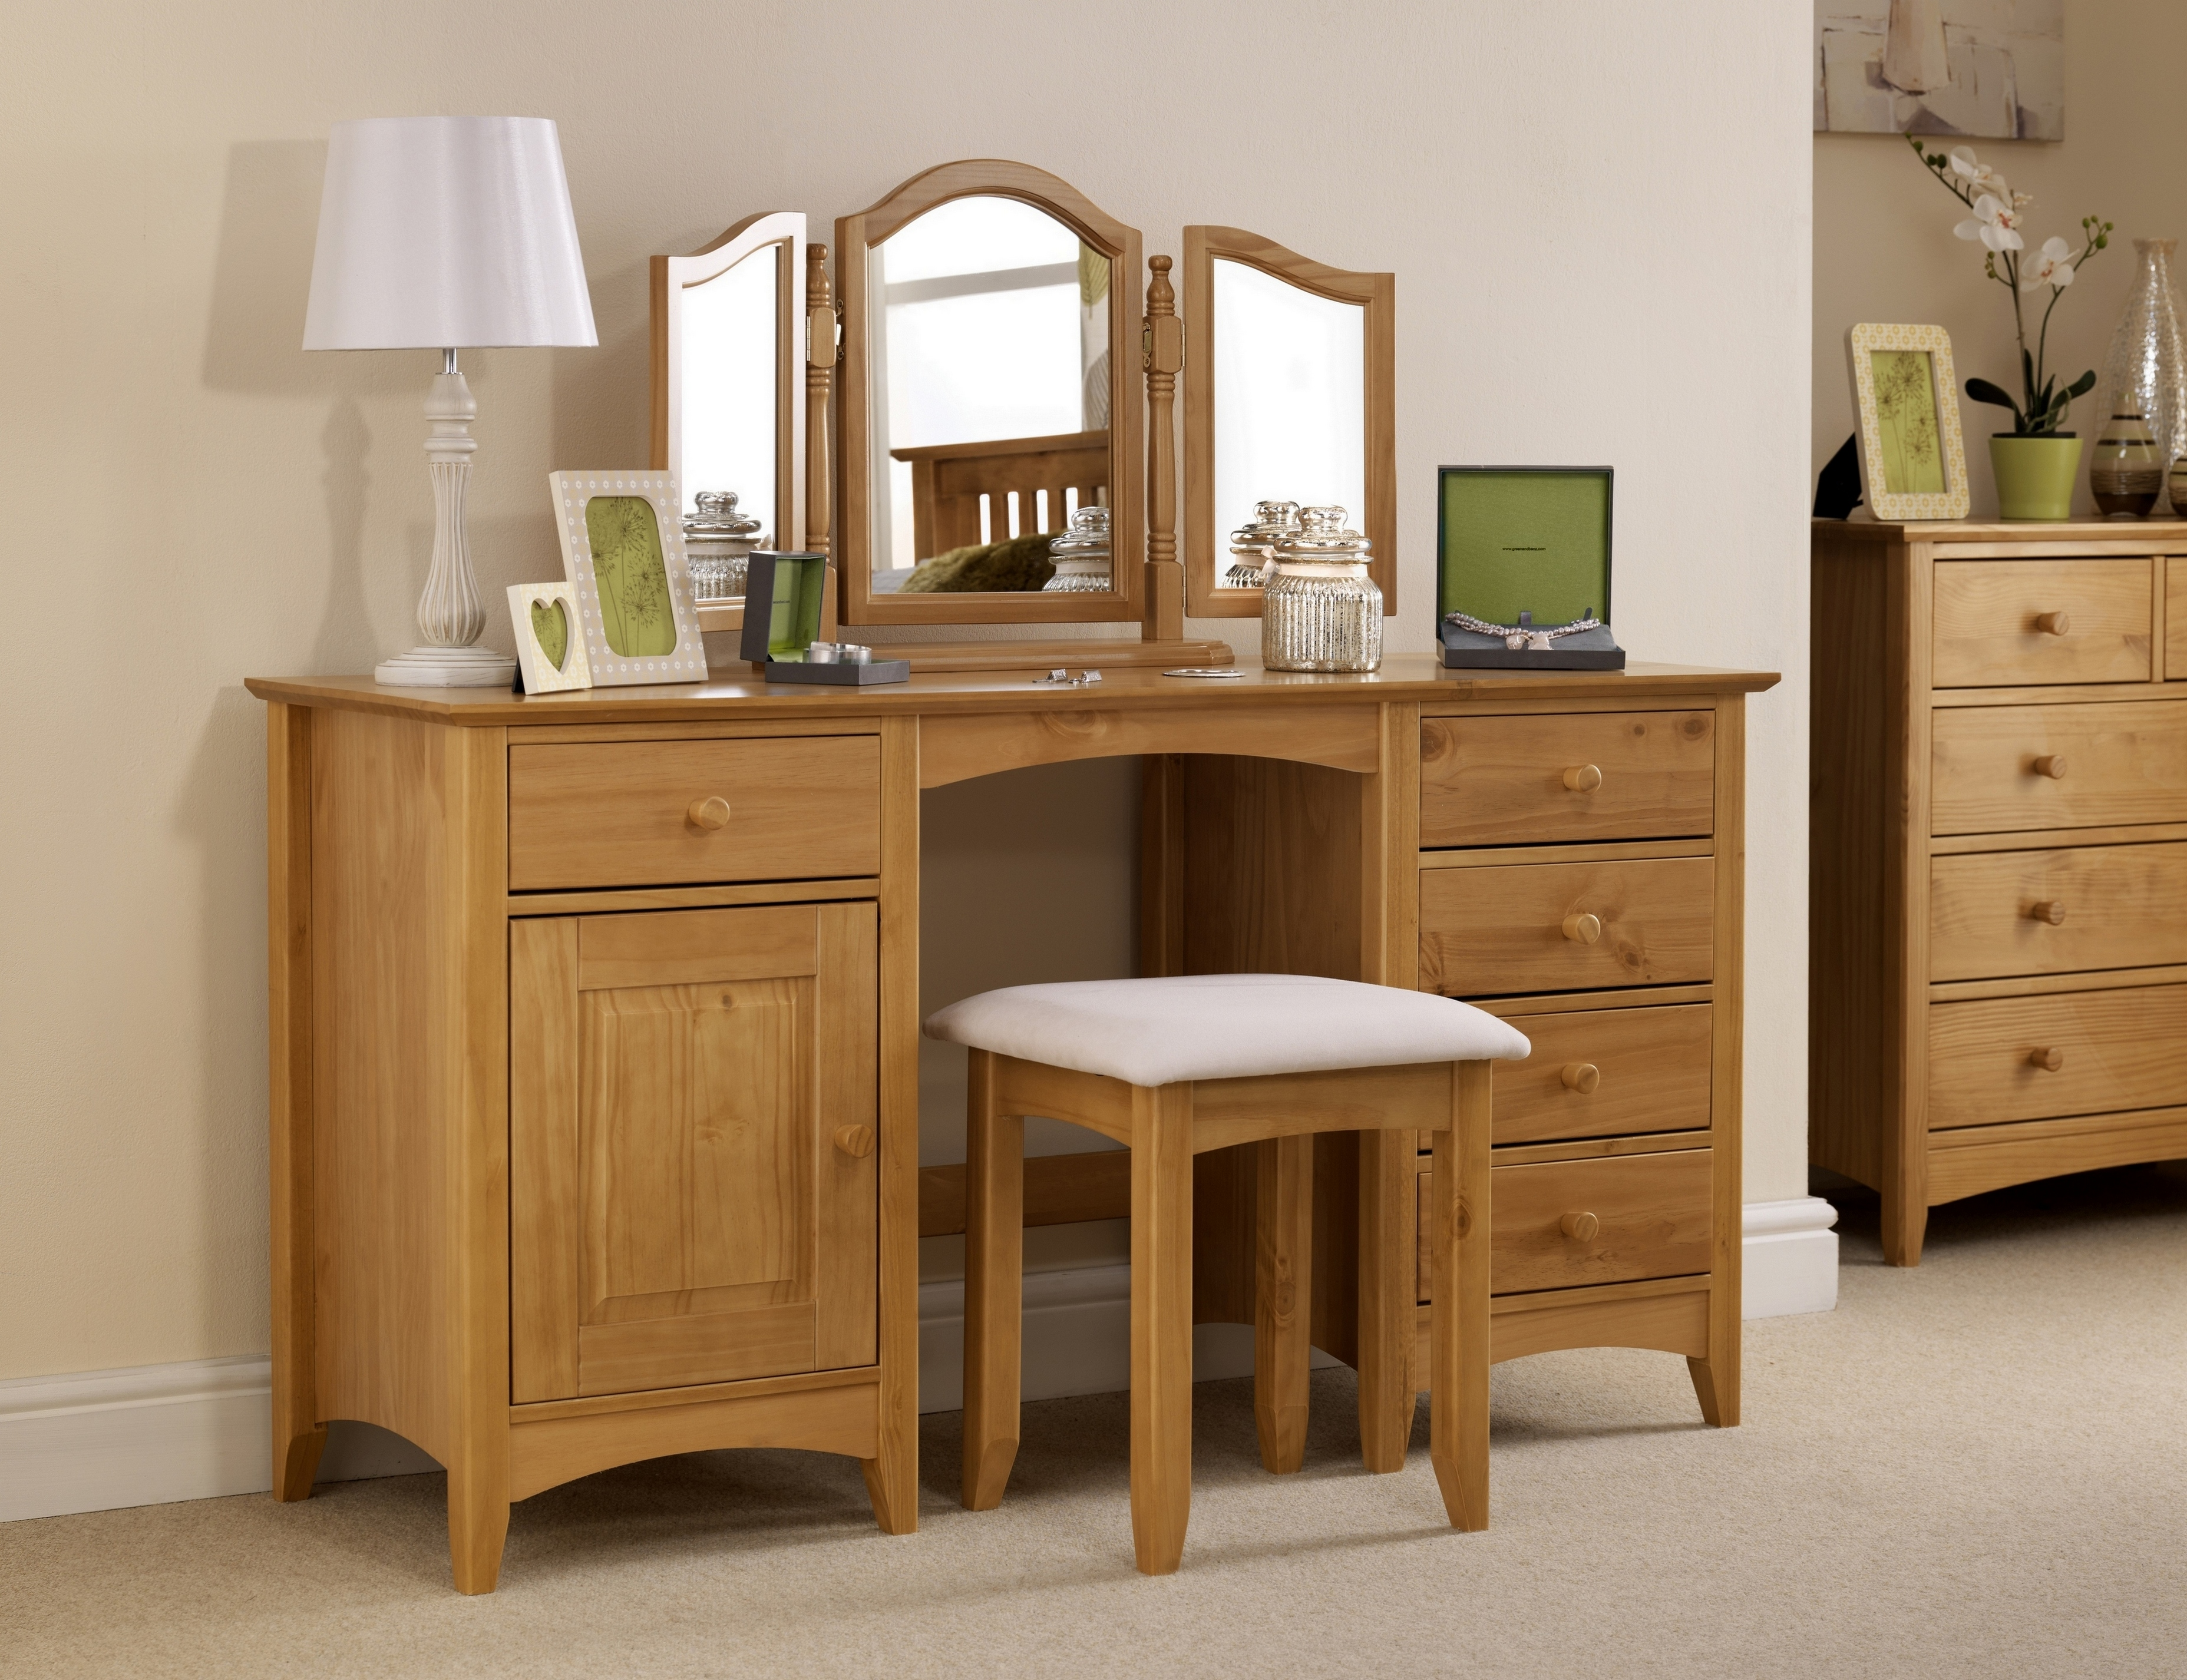 Ashfield Bedroom Furniture: Simplistic Solid Pine Dressing Stool